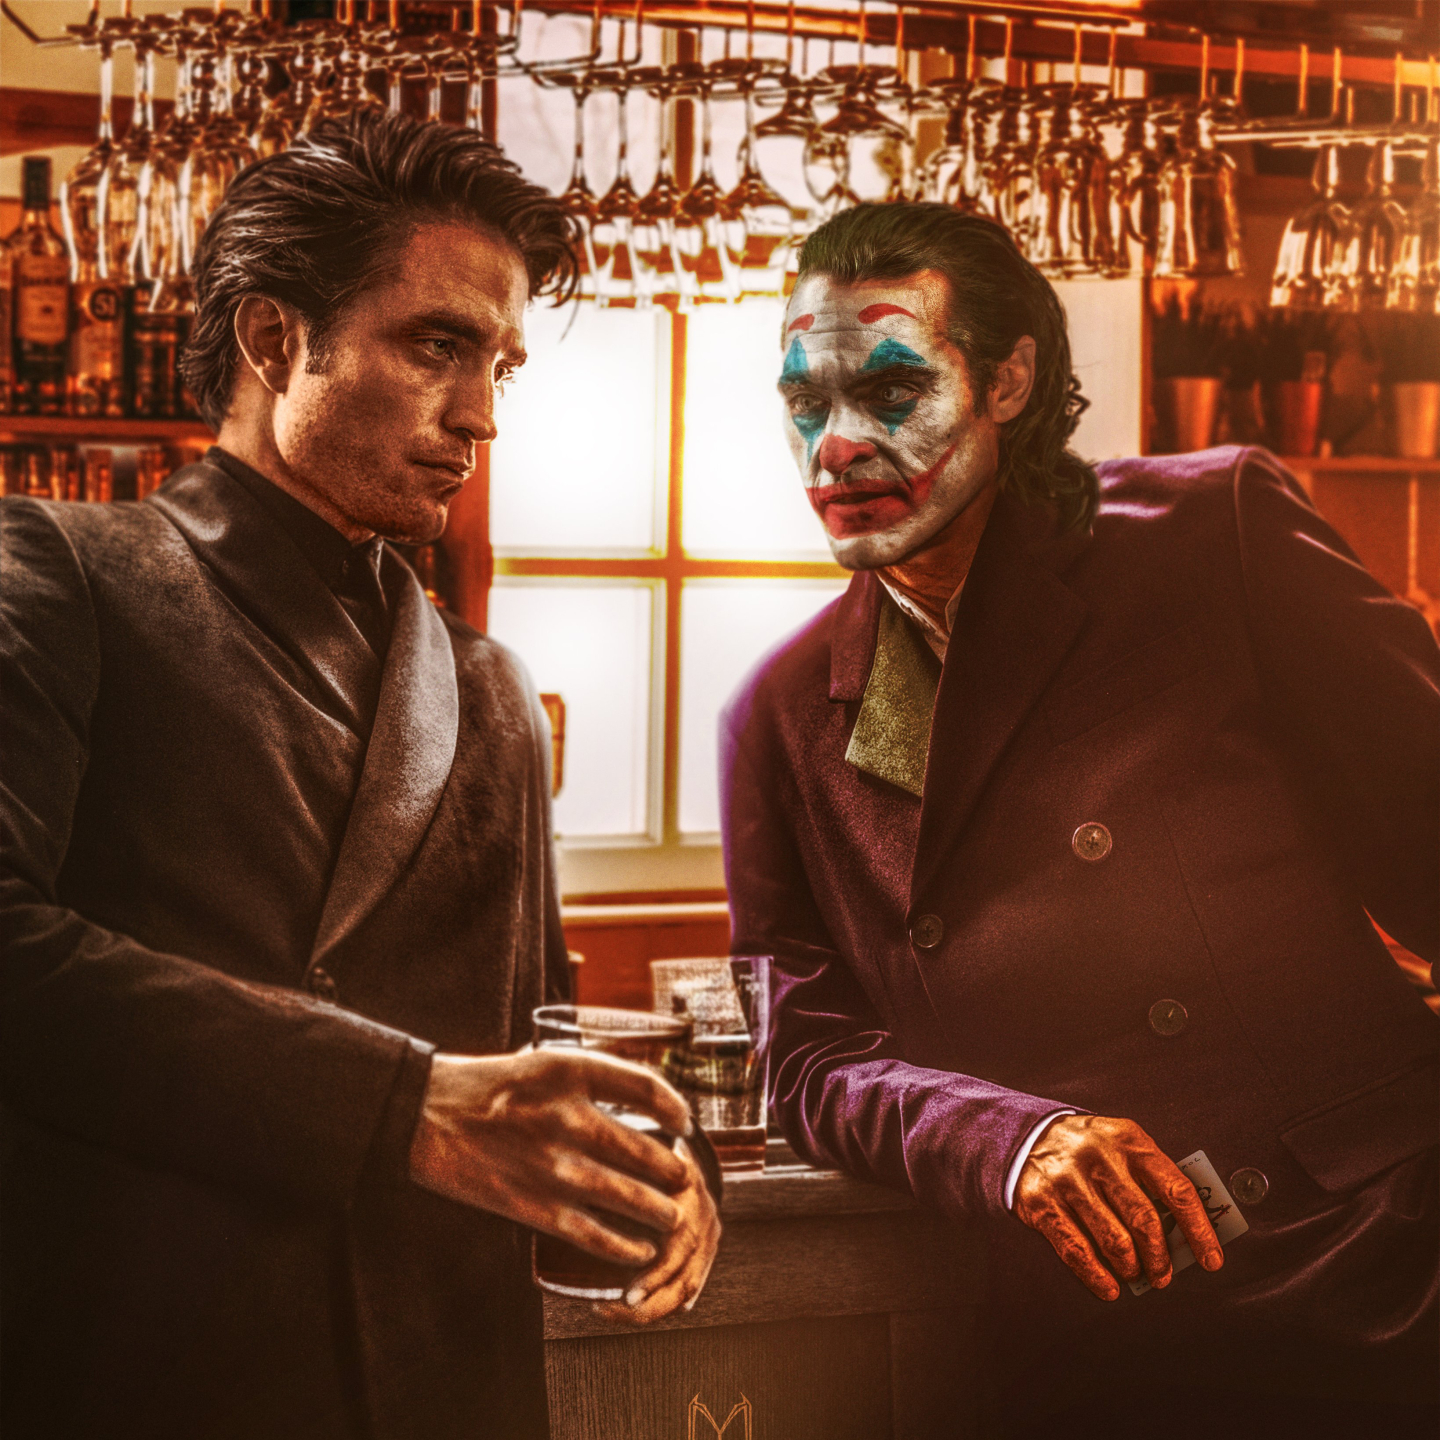 batman robert pattinson and joker joaquin phoenix a21namaUmZqaraWkpJRmaWllrWZpaWU